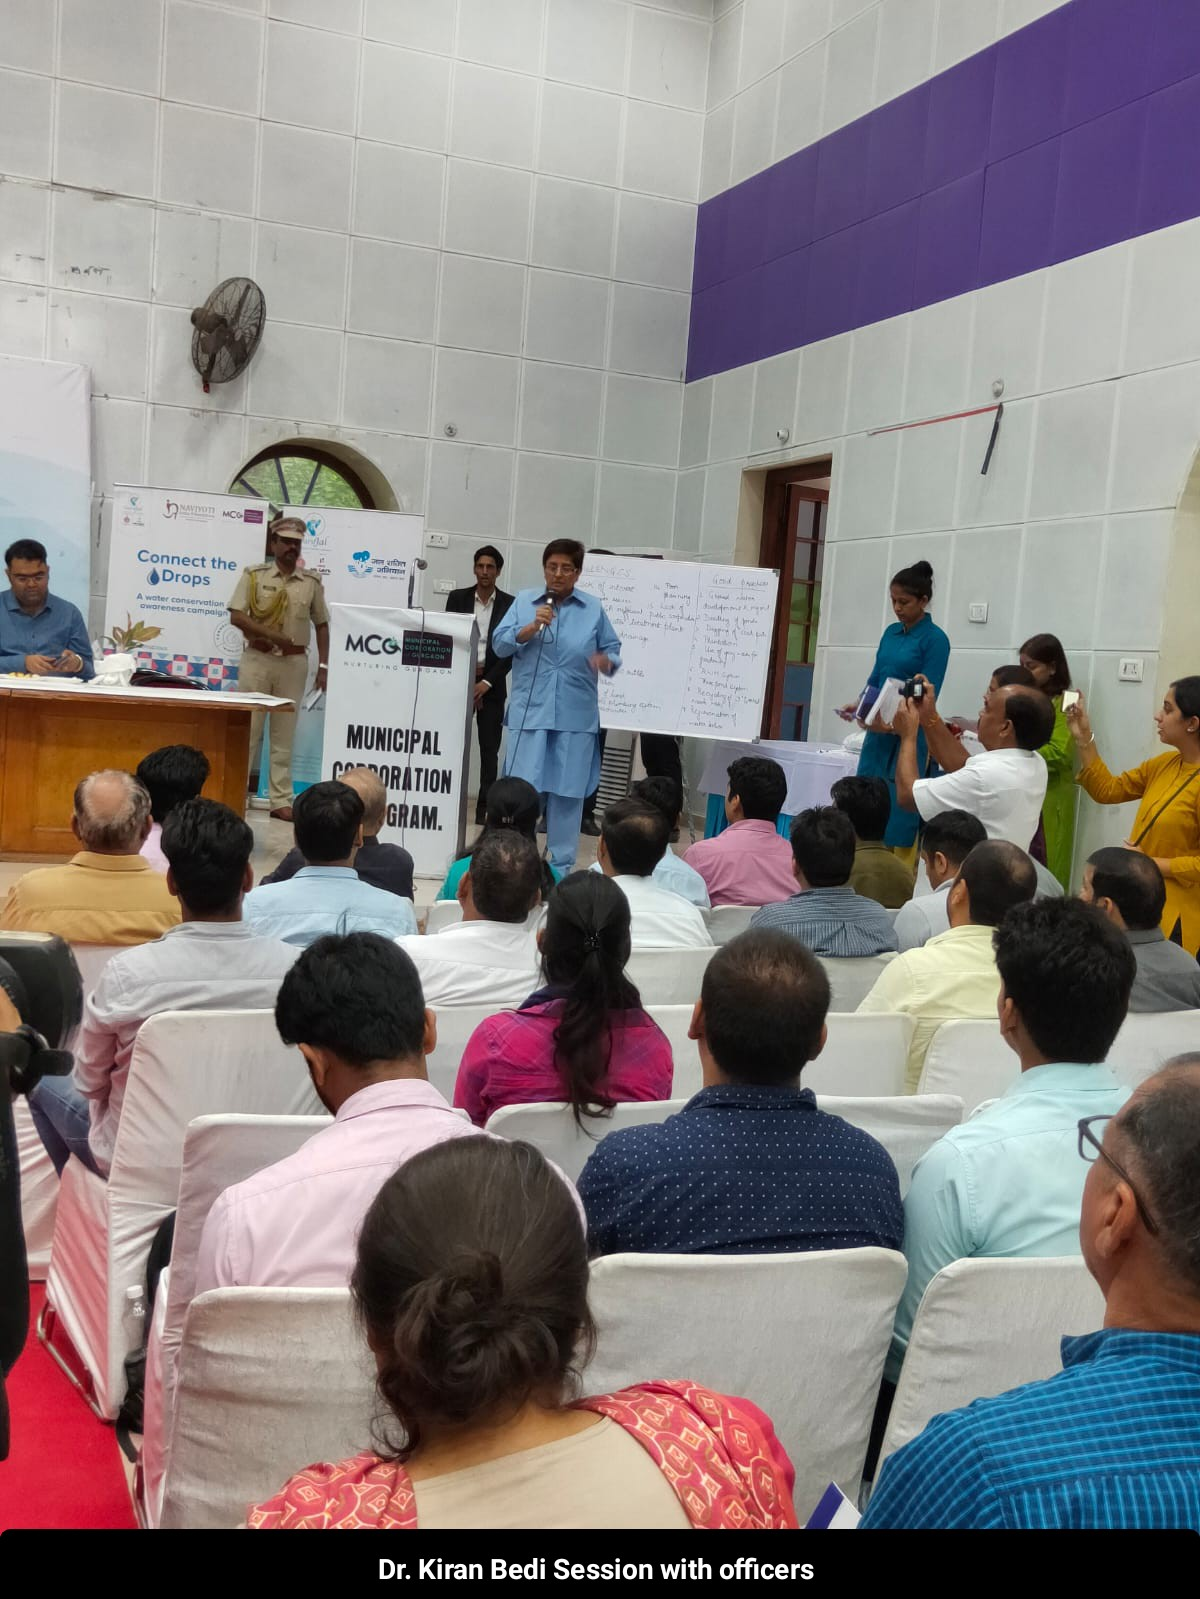 """<span  class=""""uc_style_uc_tiles_grid_image_elementor_uc_items_attribute_title"""" style=""""color:#ffffff;"""">Dr. Kiran Bedi session with officers</span>"""